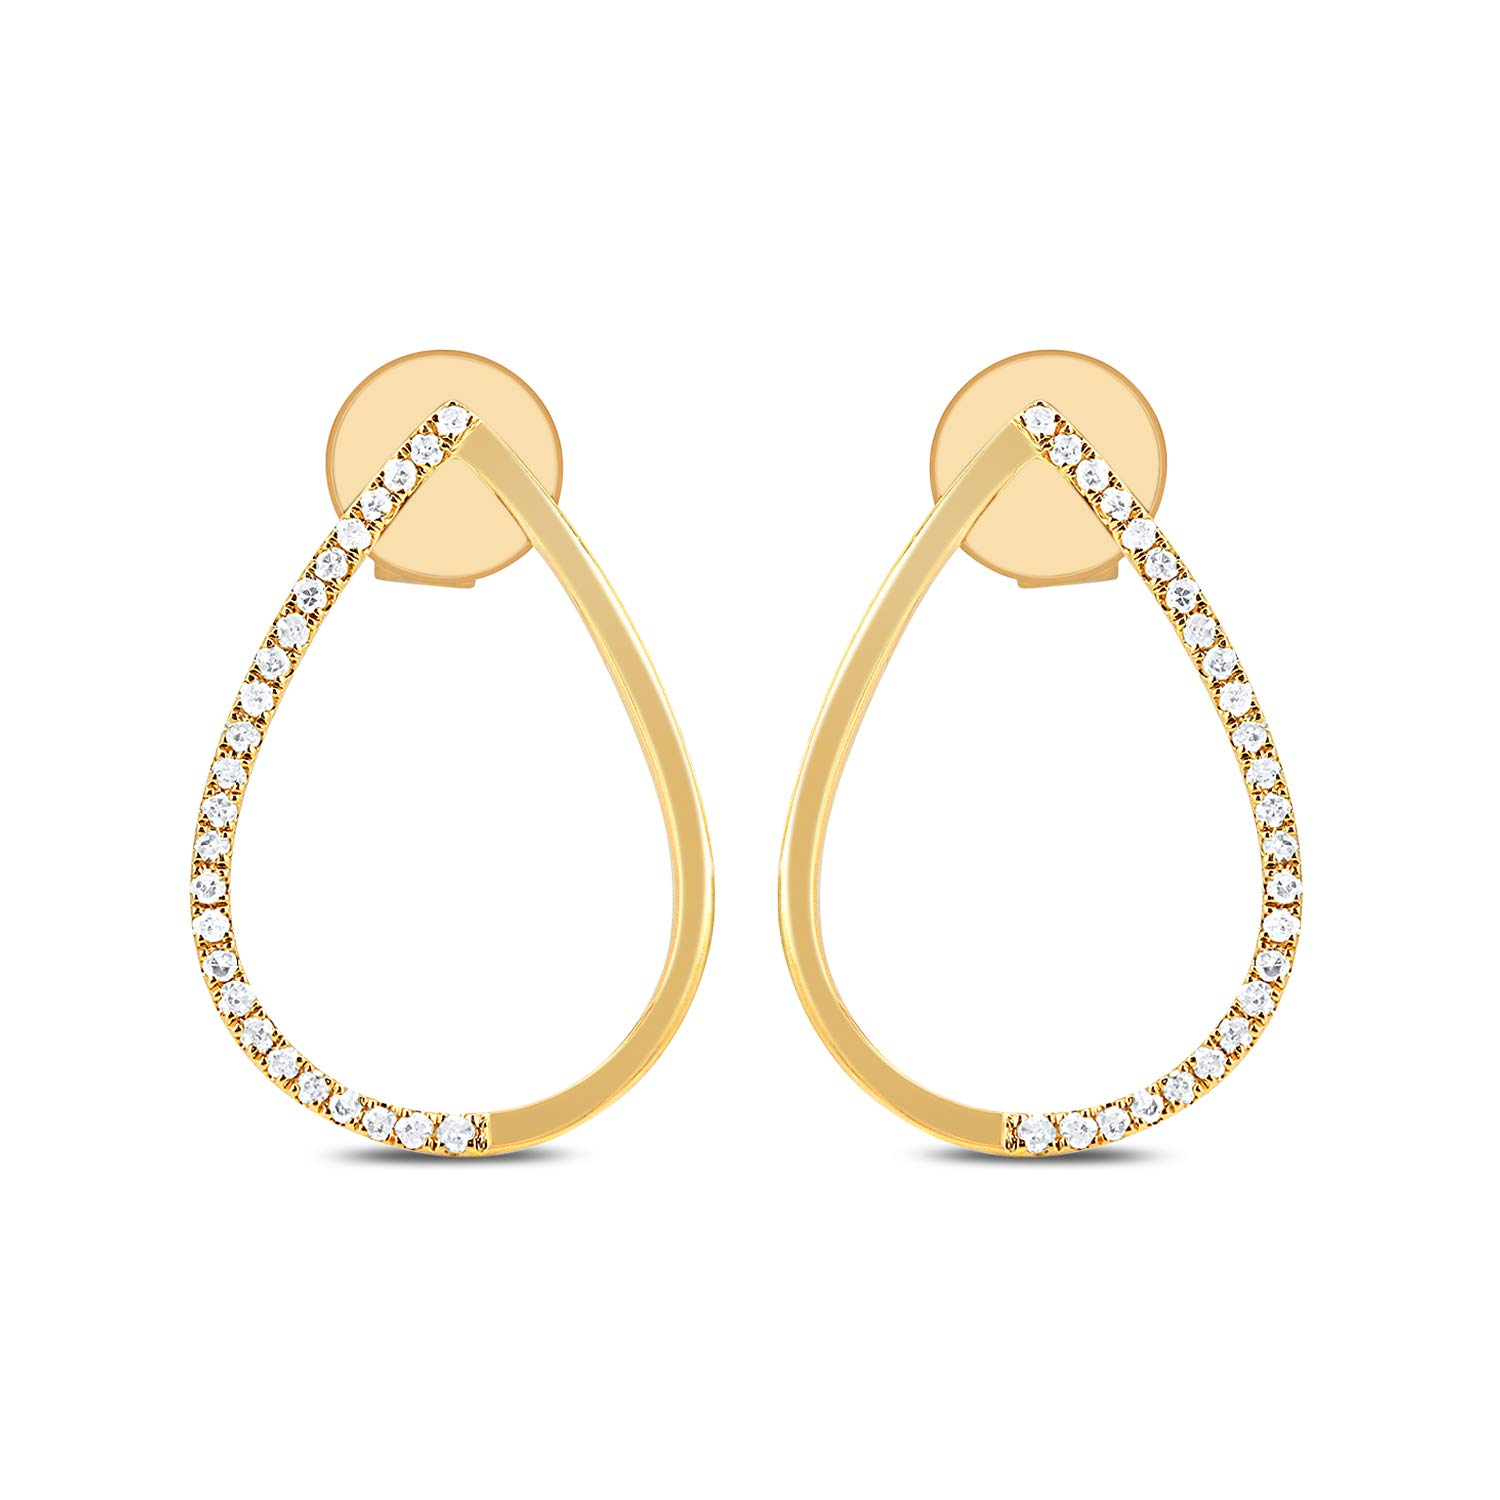 DIAMOND COUTURE 14K Yellow Gold 0.10 Carats of Sparkling White Diamonds Teardrop Earrings for Women, I-J Color, I1-I2 Clarity